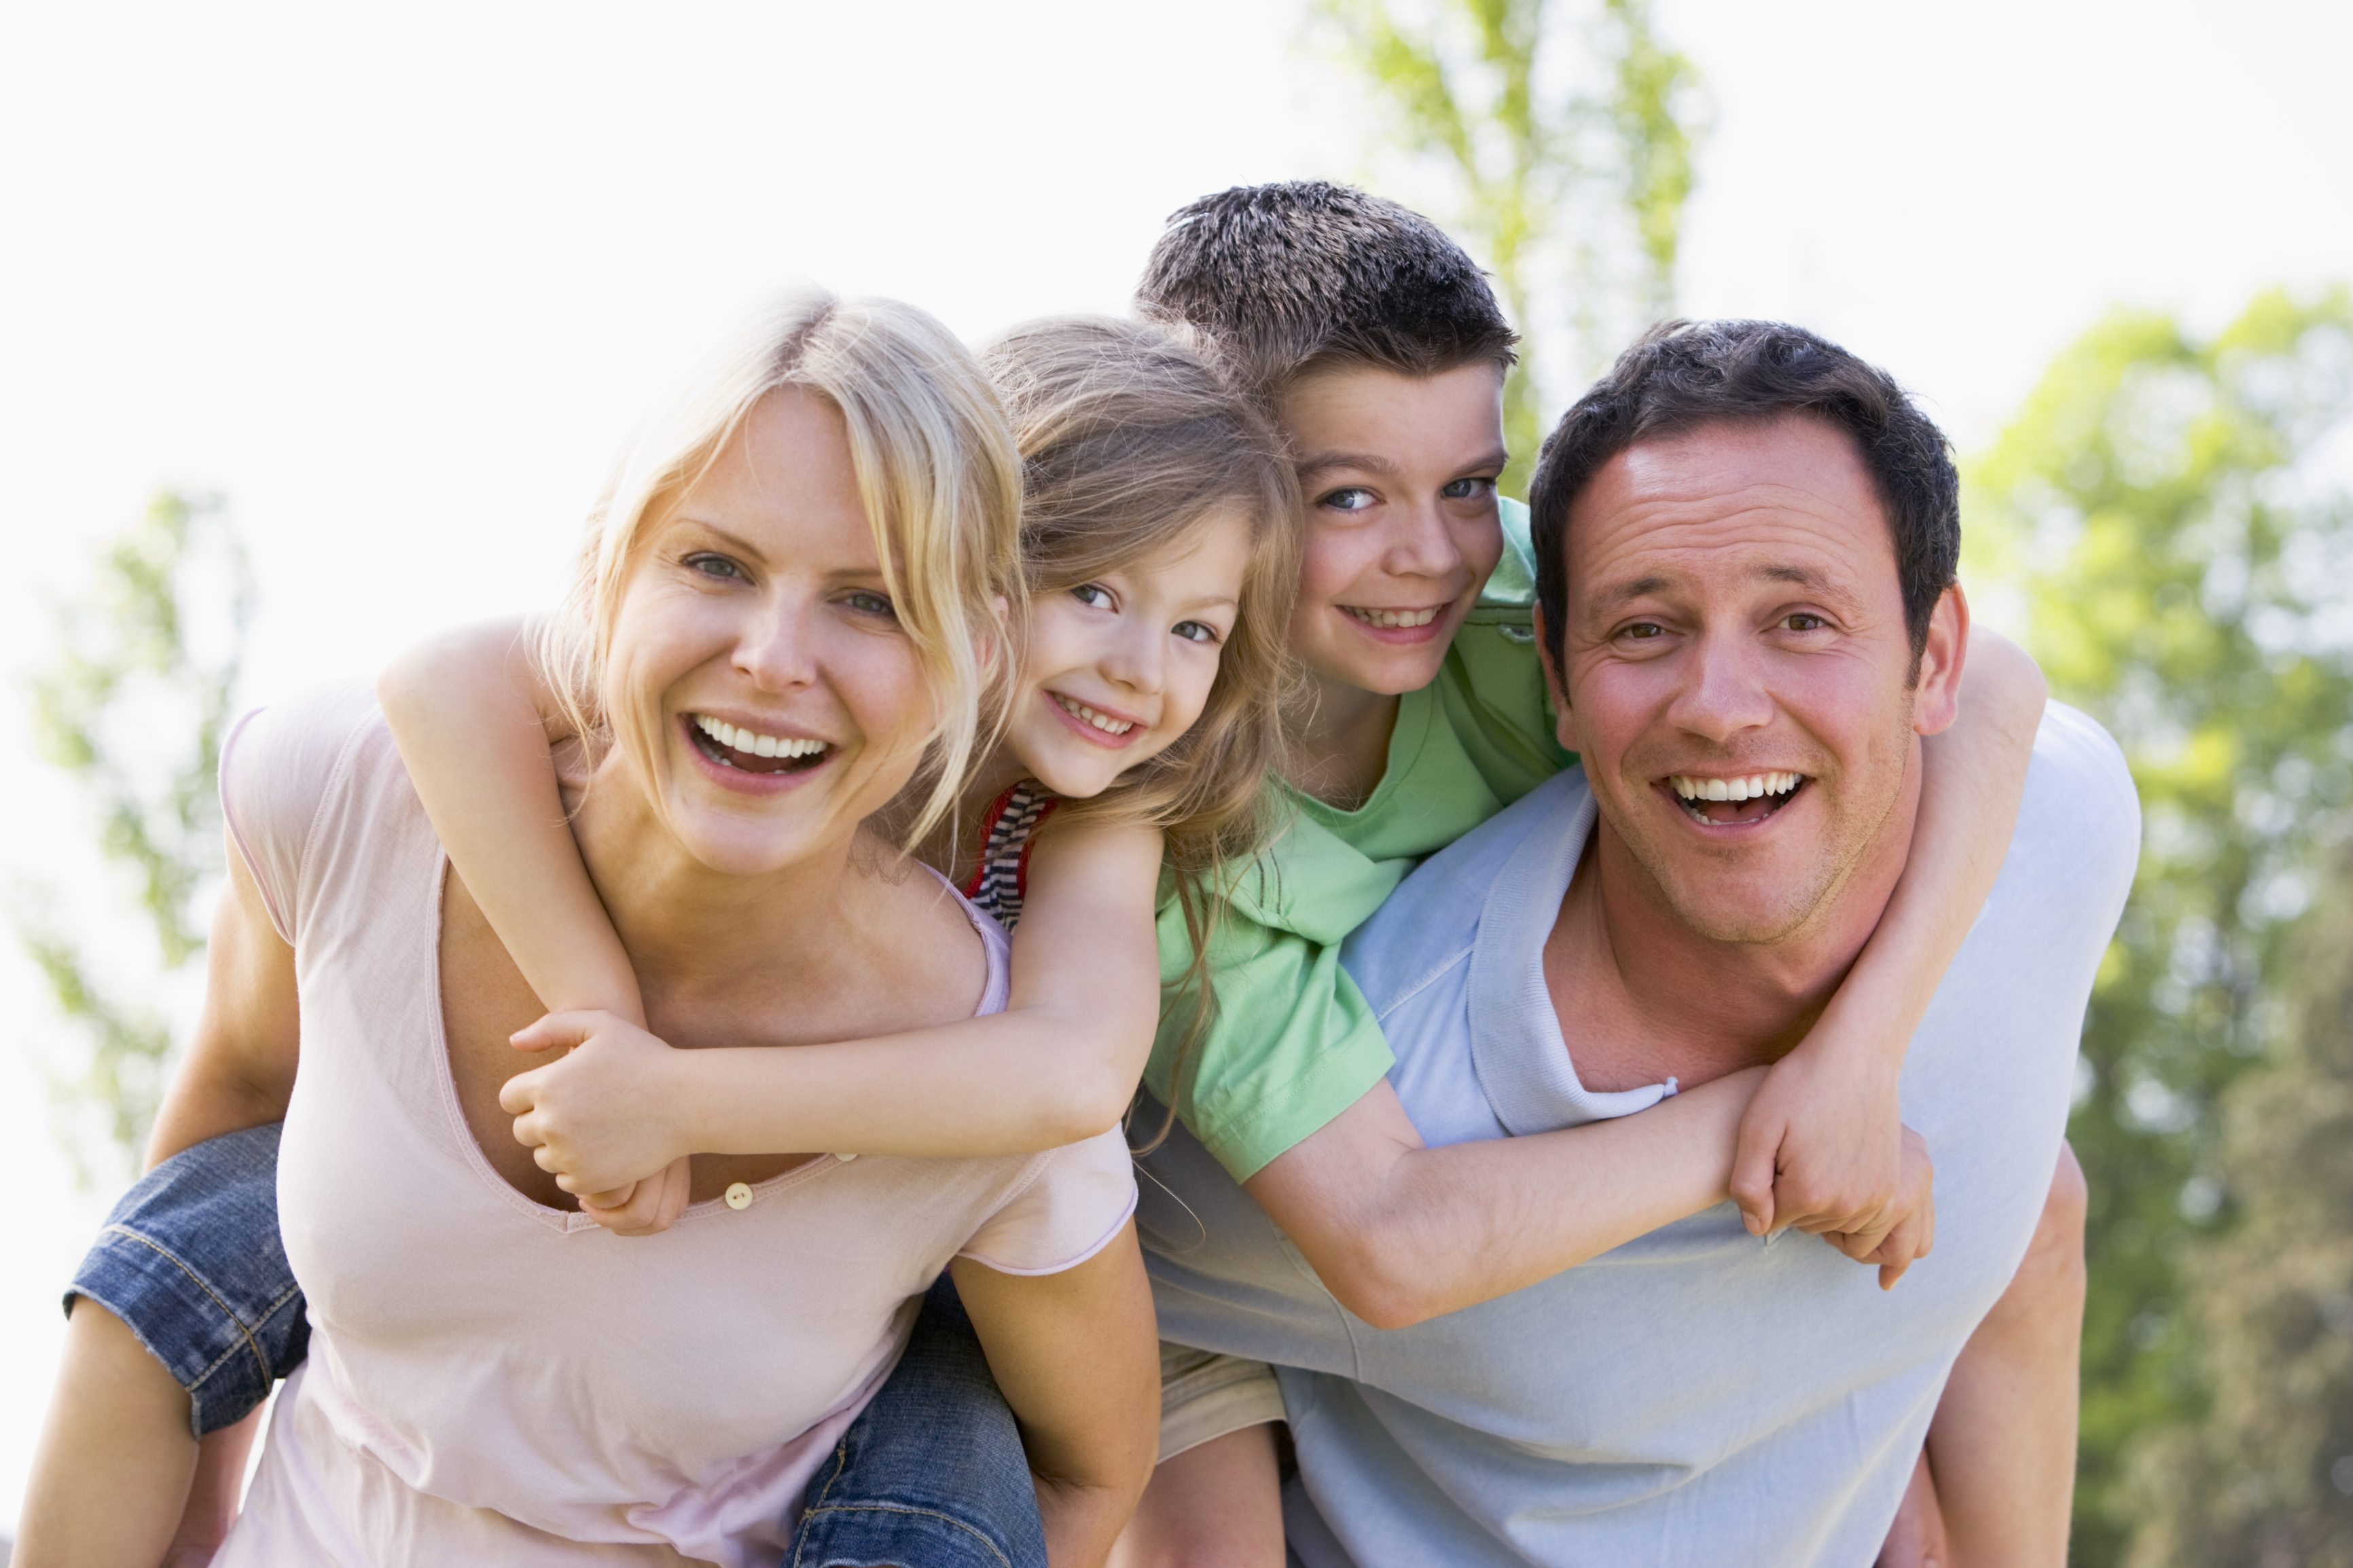 couple-giving-two-children-piggyback-rides-smiling